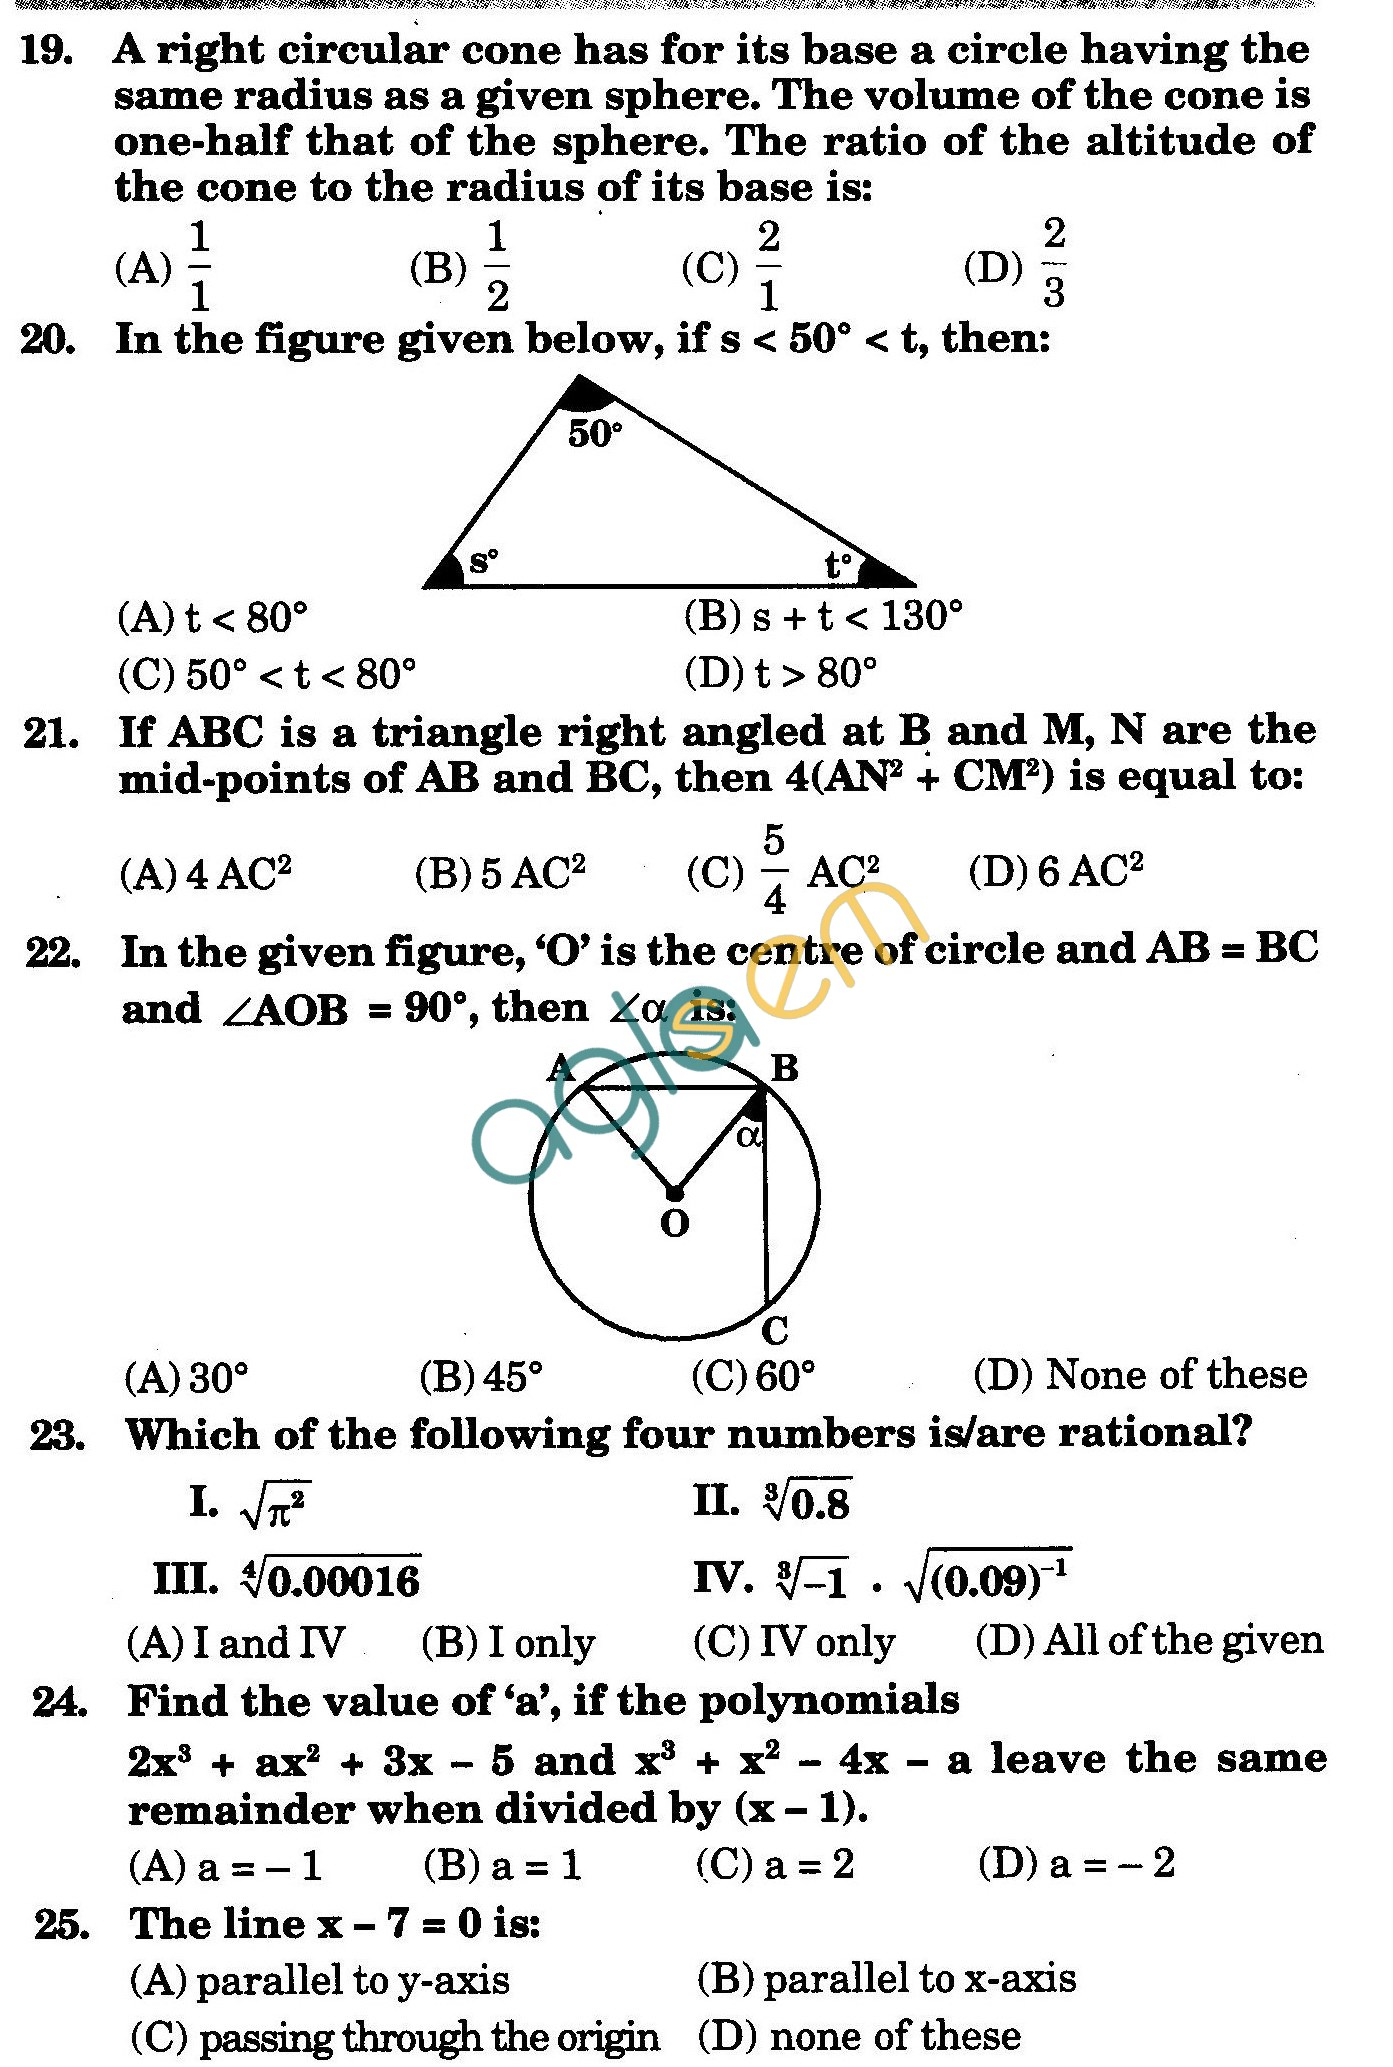 NSTSE 2010: Class IX Question Paper with Answers - Mathematics